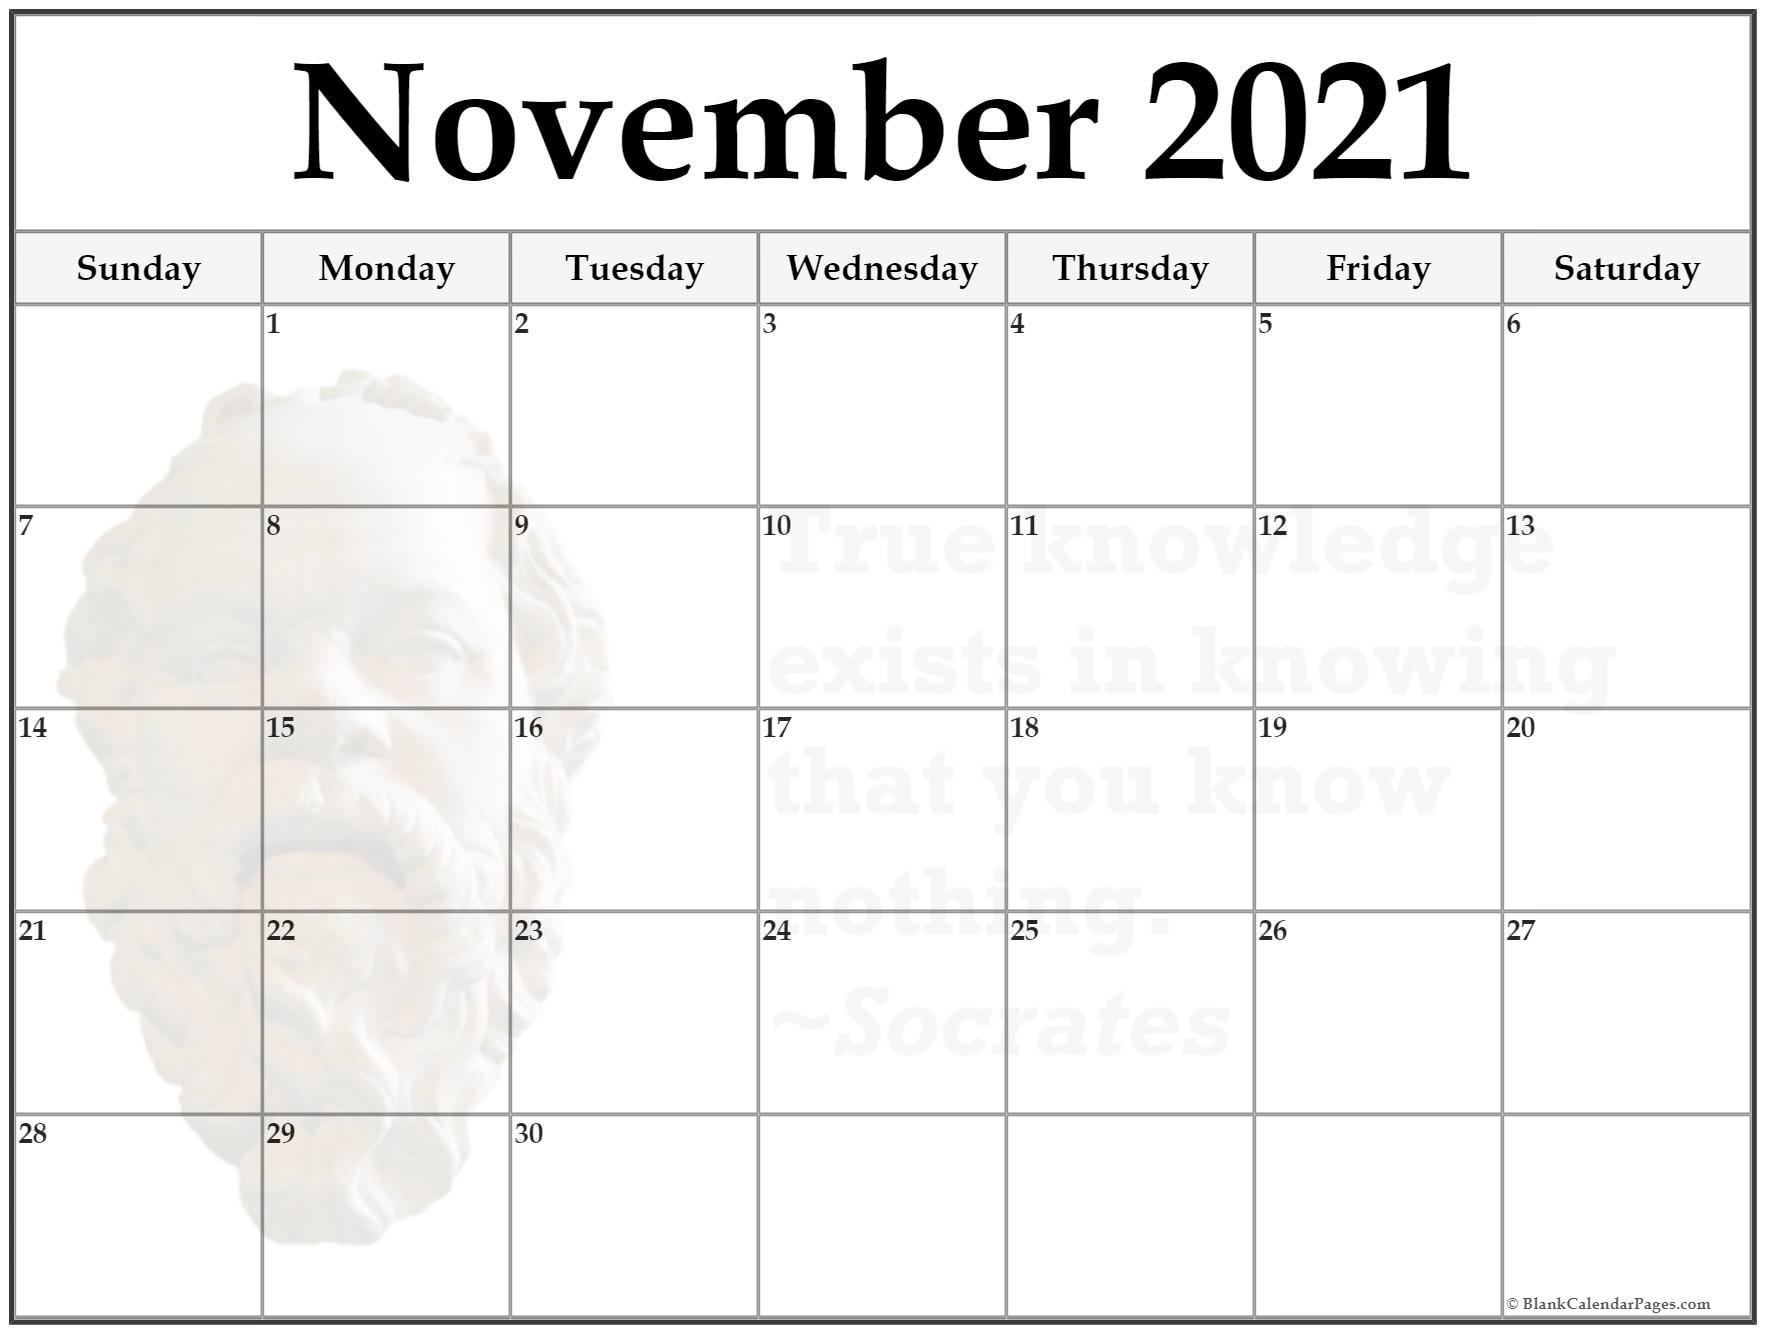 November 2019 monthly quote calendar template. True knowledge exists in knowing that you know nothing. ~Socrates